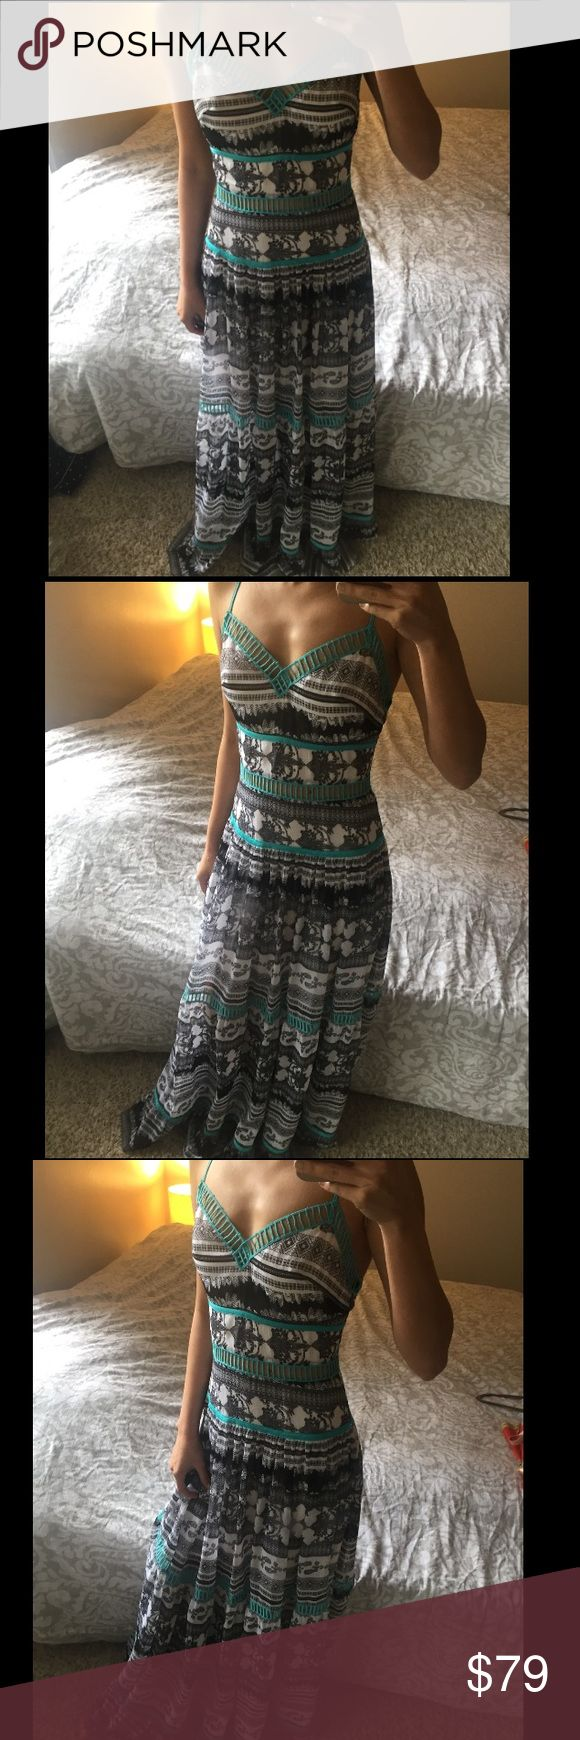 Bebe Tribal Print Teal Trim Maxi Dress XS 0 Brand New. Fits size 0.  Sweeping crinkle chiffon maxi dress with mix-print stripes, a tiered peasant skirt and contrast threadwork that reveals just the right amount of skin. Adjustable straps. Hidden back hook-and-eye and zip closure. Lined to mid-thigh. 🌸 No Trades 🌸 Ships next day unless Sunday 🌸 Make an offer! I accept most reasonable offers! 😊 bebe Dresses Maxi